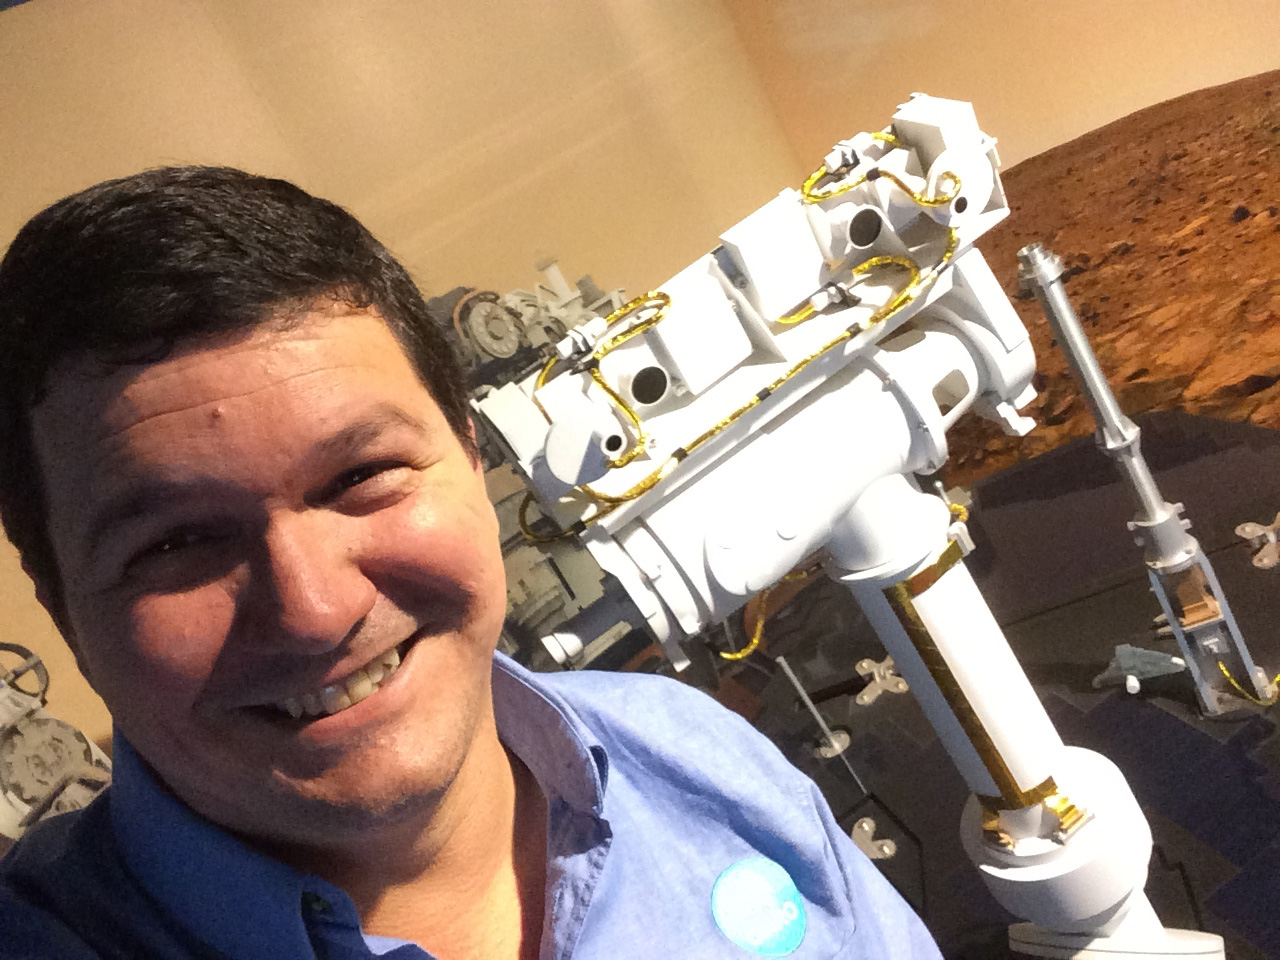 Me and my Rover. Paulo de Souza with a model of the Mars Rover, Opportunity.